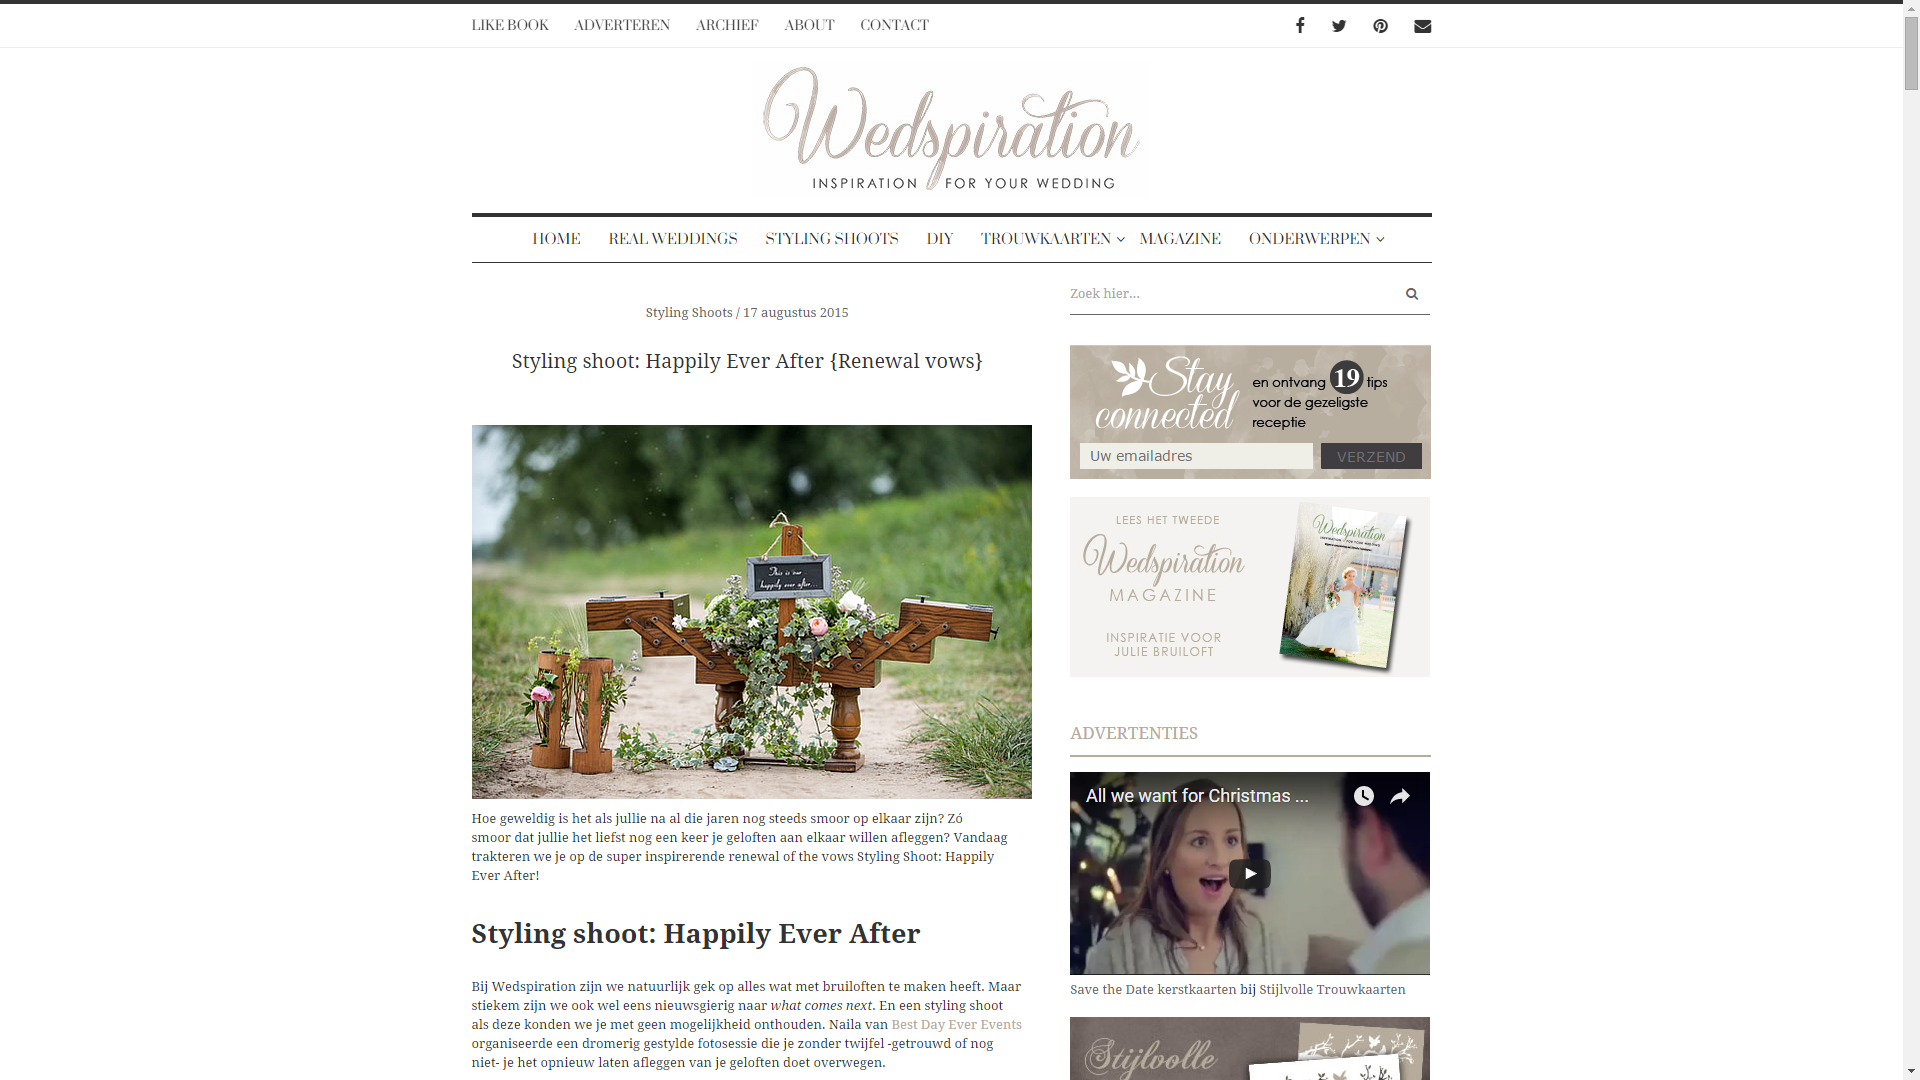 Wedspiration_HappilyEverAfter